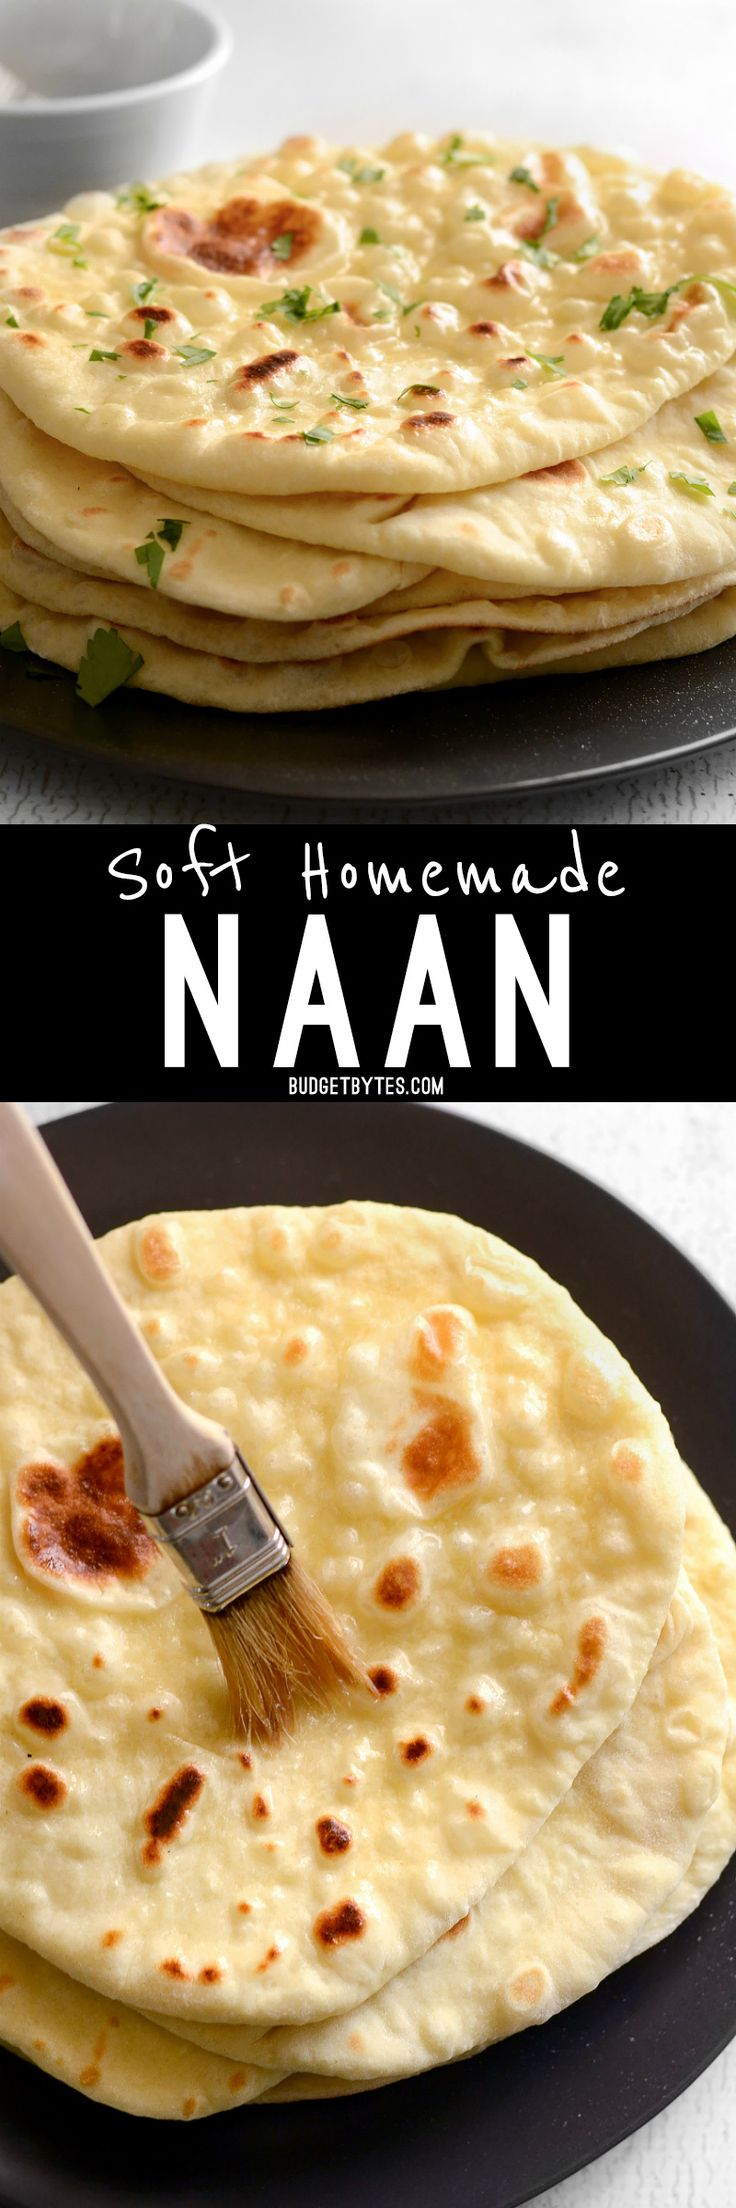 ( ^o^ )  Soft, pillowy, homemade naan is easier to make than you think and it's great for sandwiches, pizza, dipping, and more. BudgetBytes.com